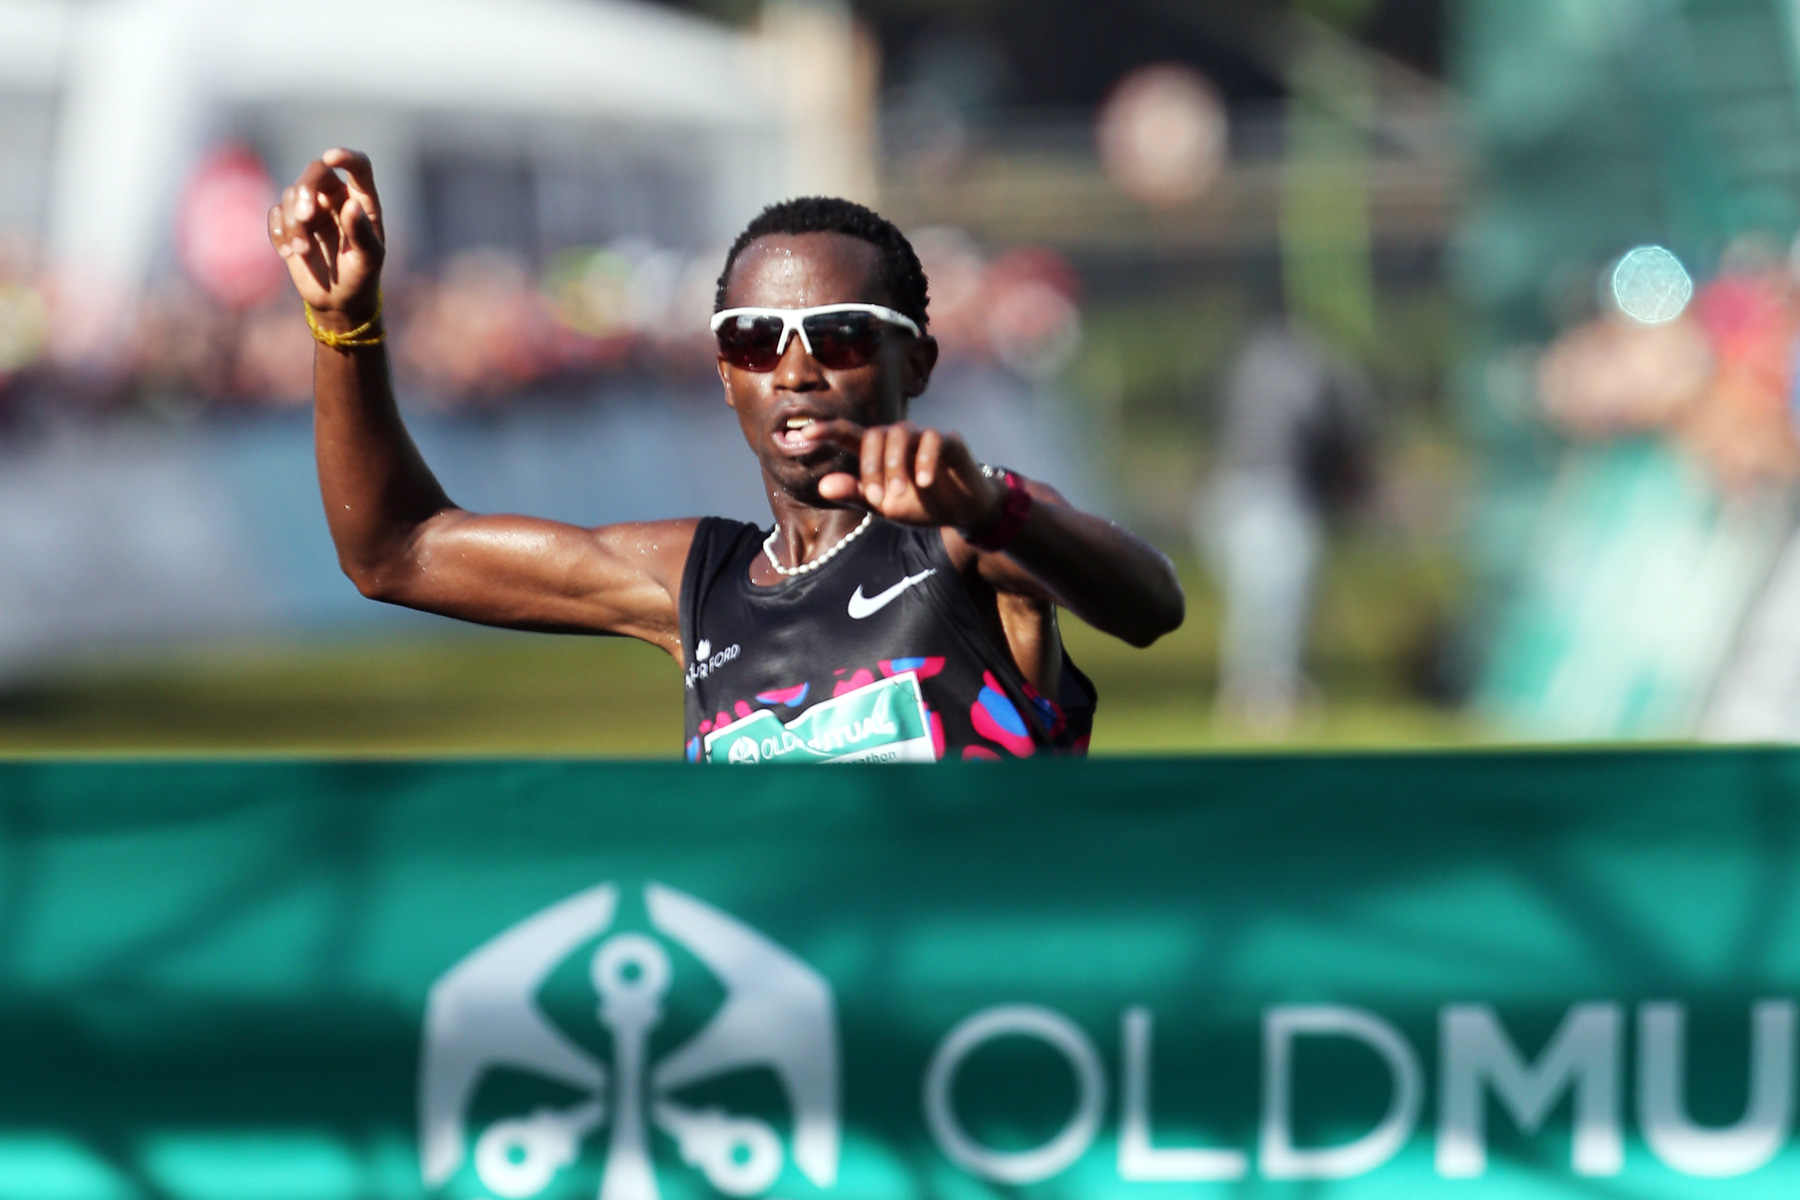 20 April 2019: Reigning champion Bong'musa Mthembu wins the Old Mutual Two Oceans Marathon Ultra in Cape Town. (Photograph by ImageSA/ Gallo Images)